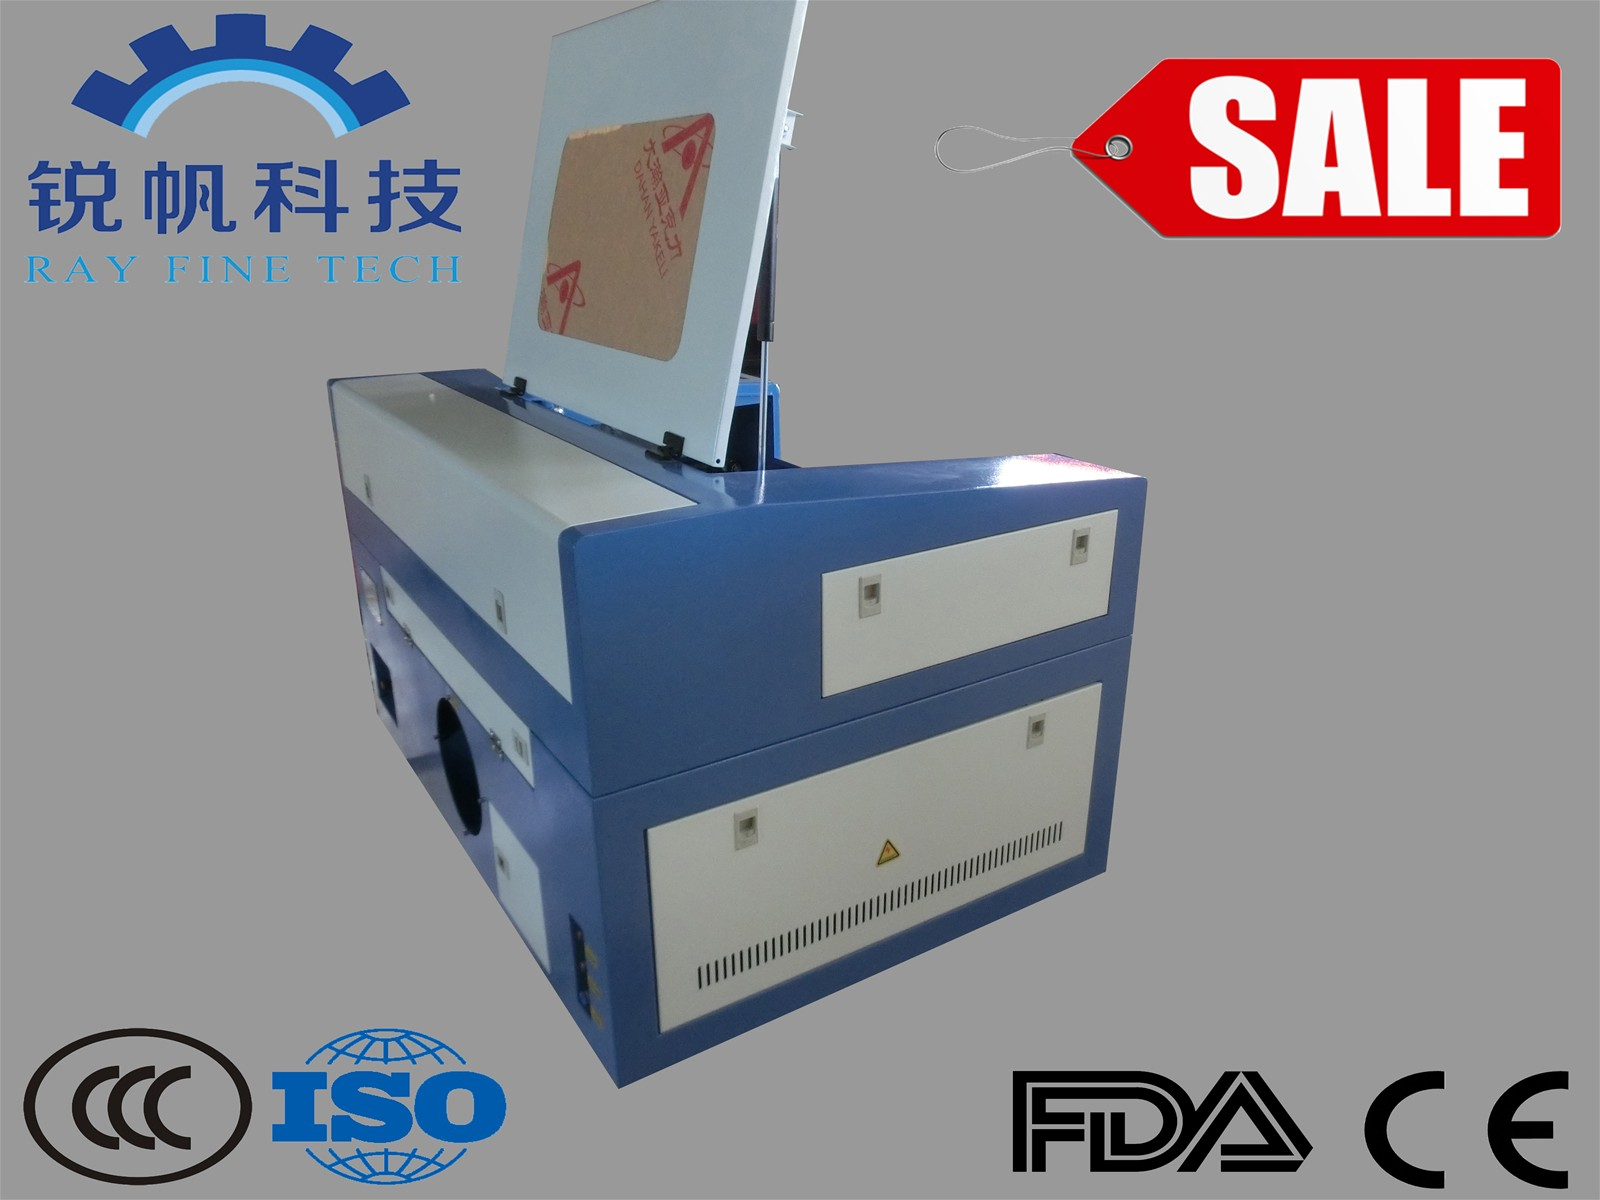 Mini Desktop Laser Cutter Machine RF-5030-CO2-50W with Red Dot Pointer